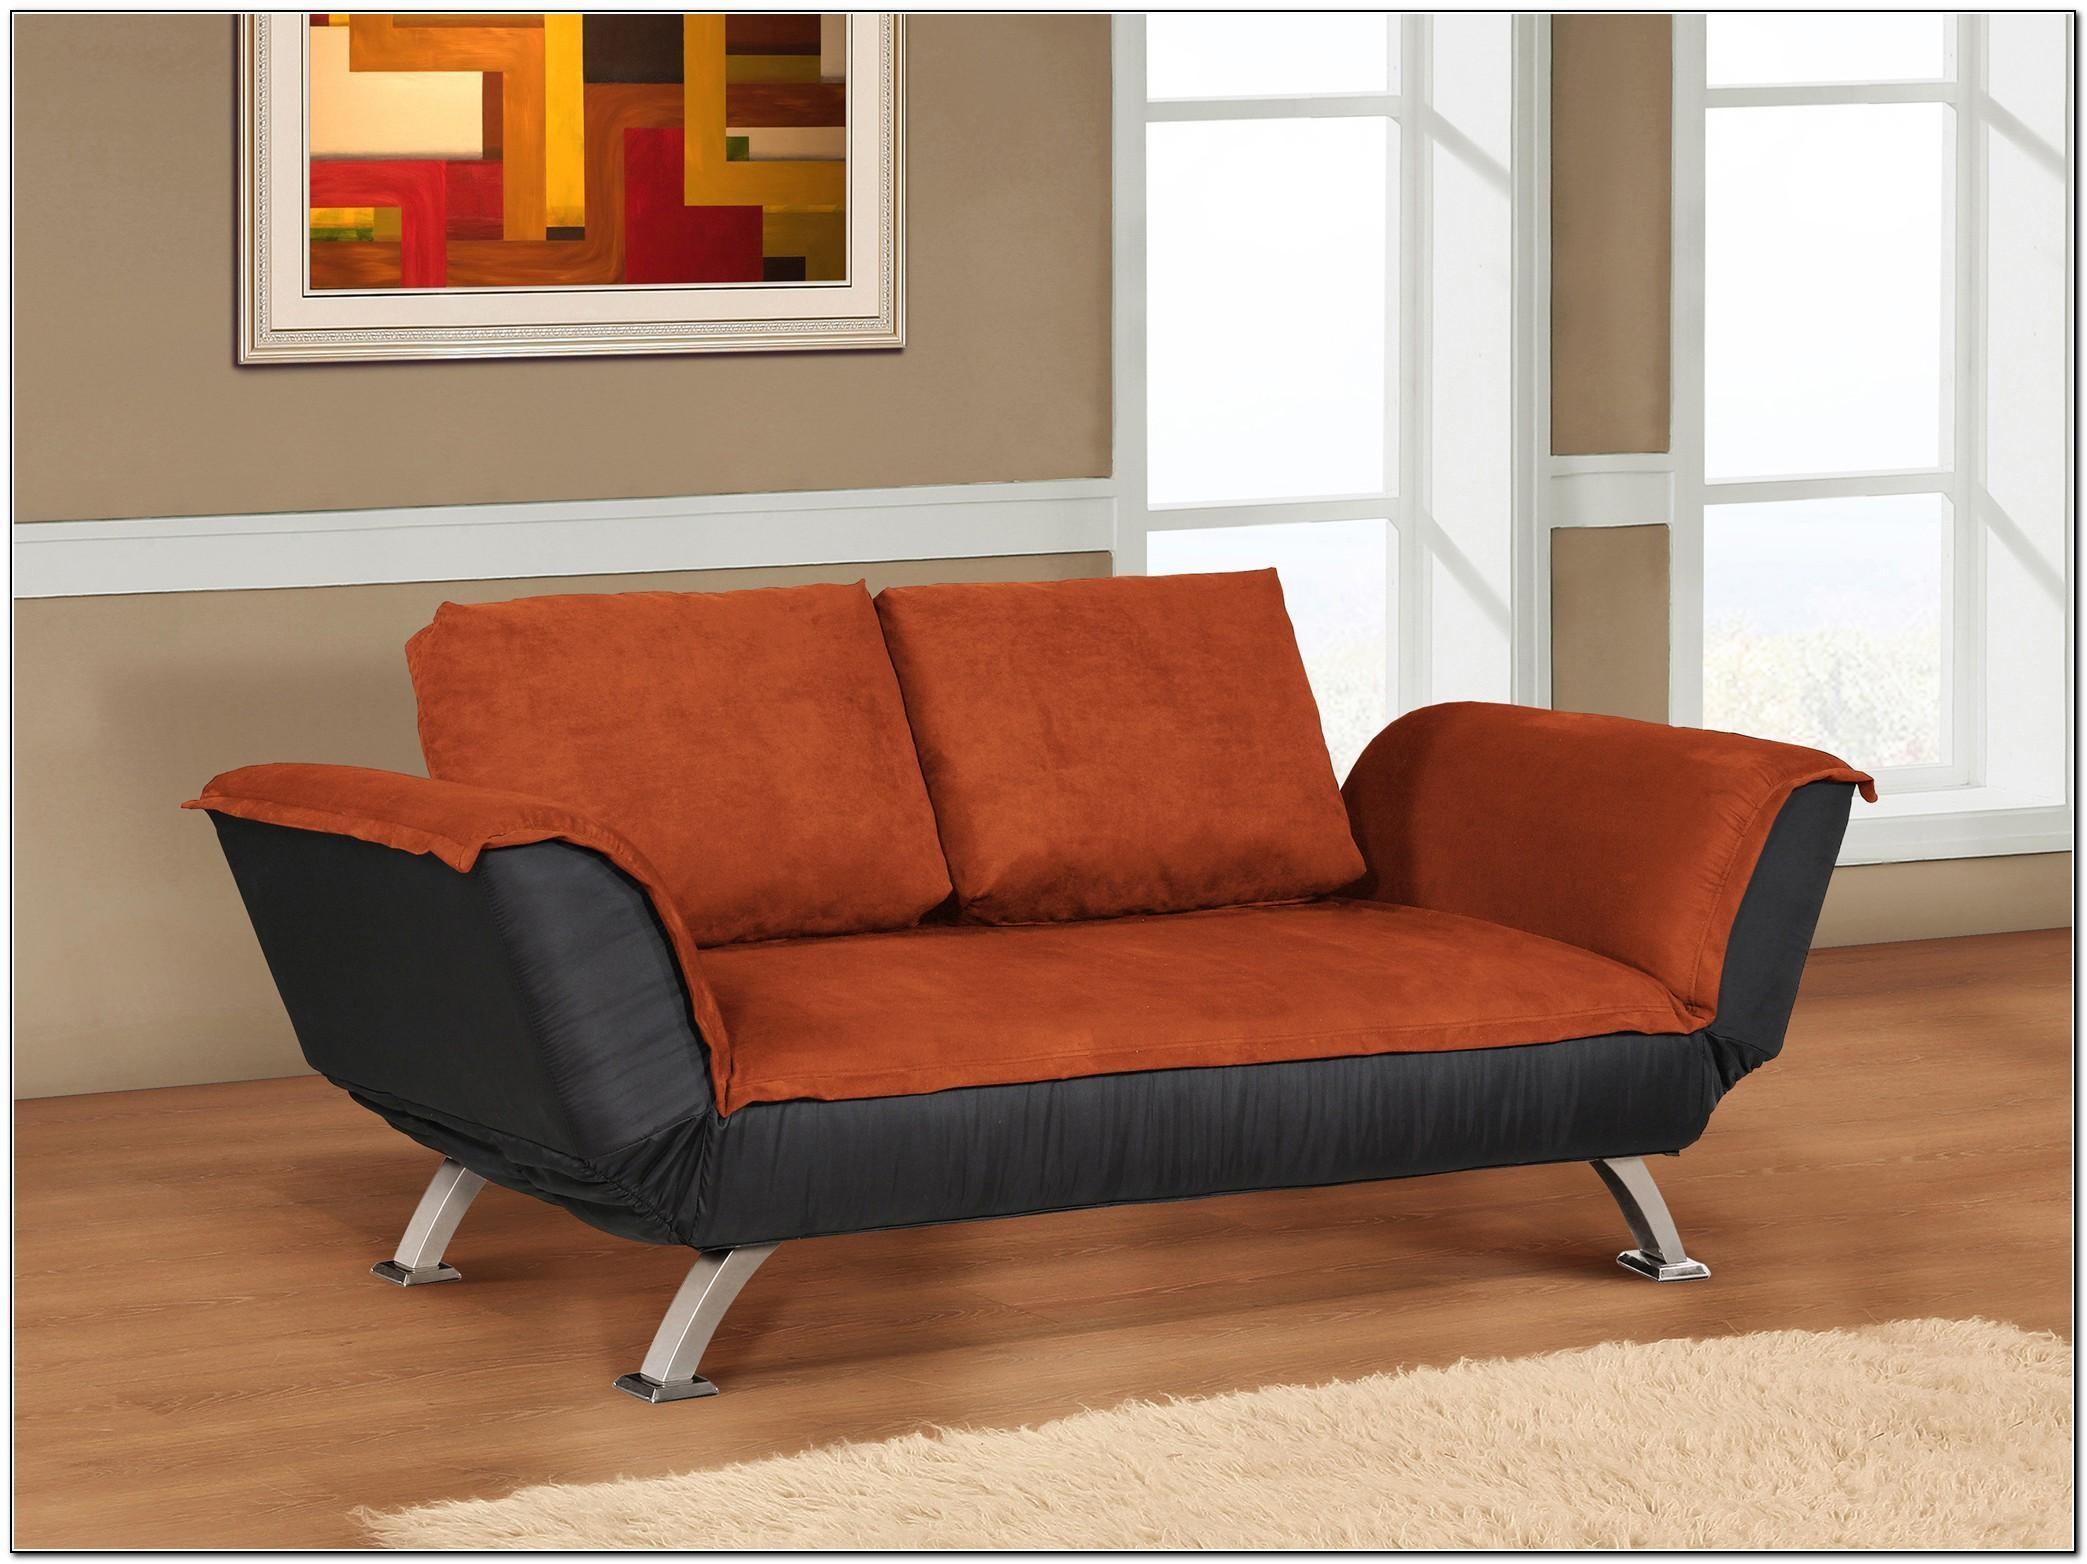 Castro Convertible Sofa Bed F Home Design | Genty For Castro Convertible Sofas (Image 4 of 20)